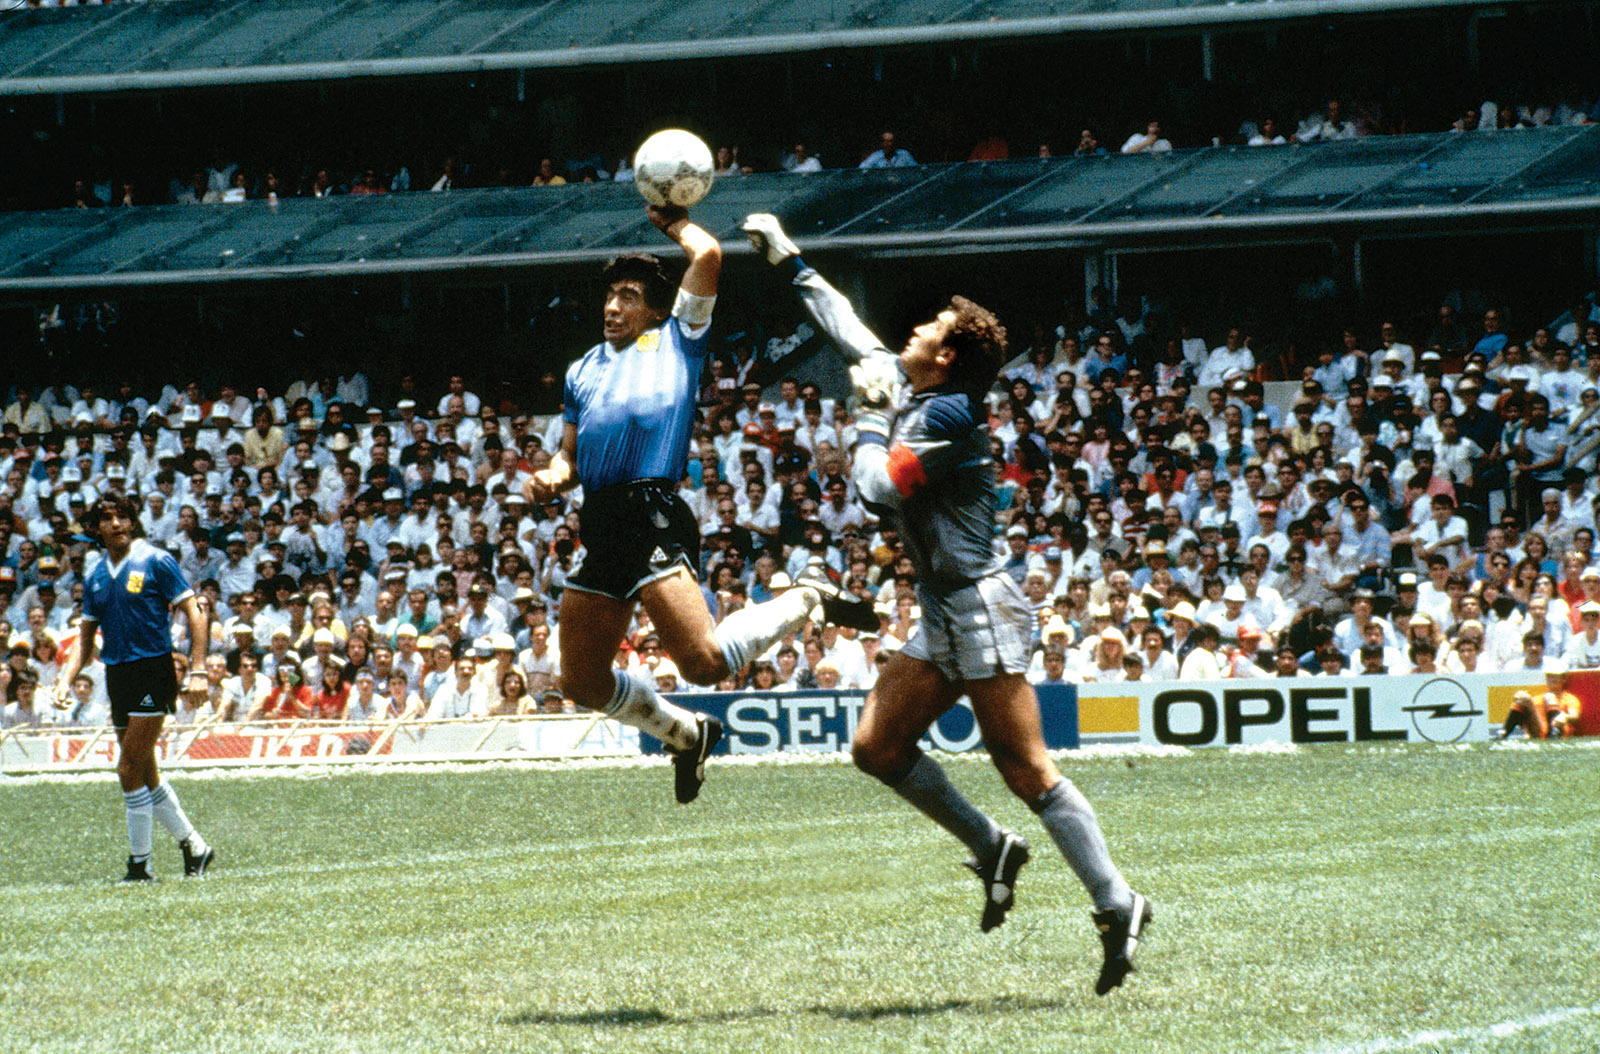 Diego Maradona of Argentina scoring his 'hand of God' goal past Peter Shilton of England in the World Cup quarter-finals, Mexico City, June 1986